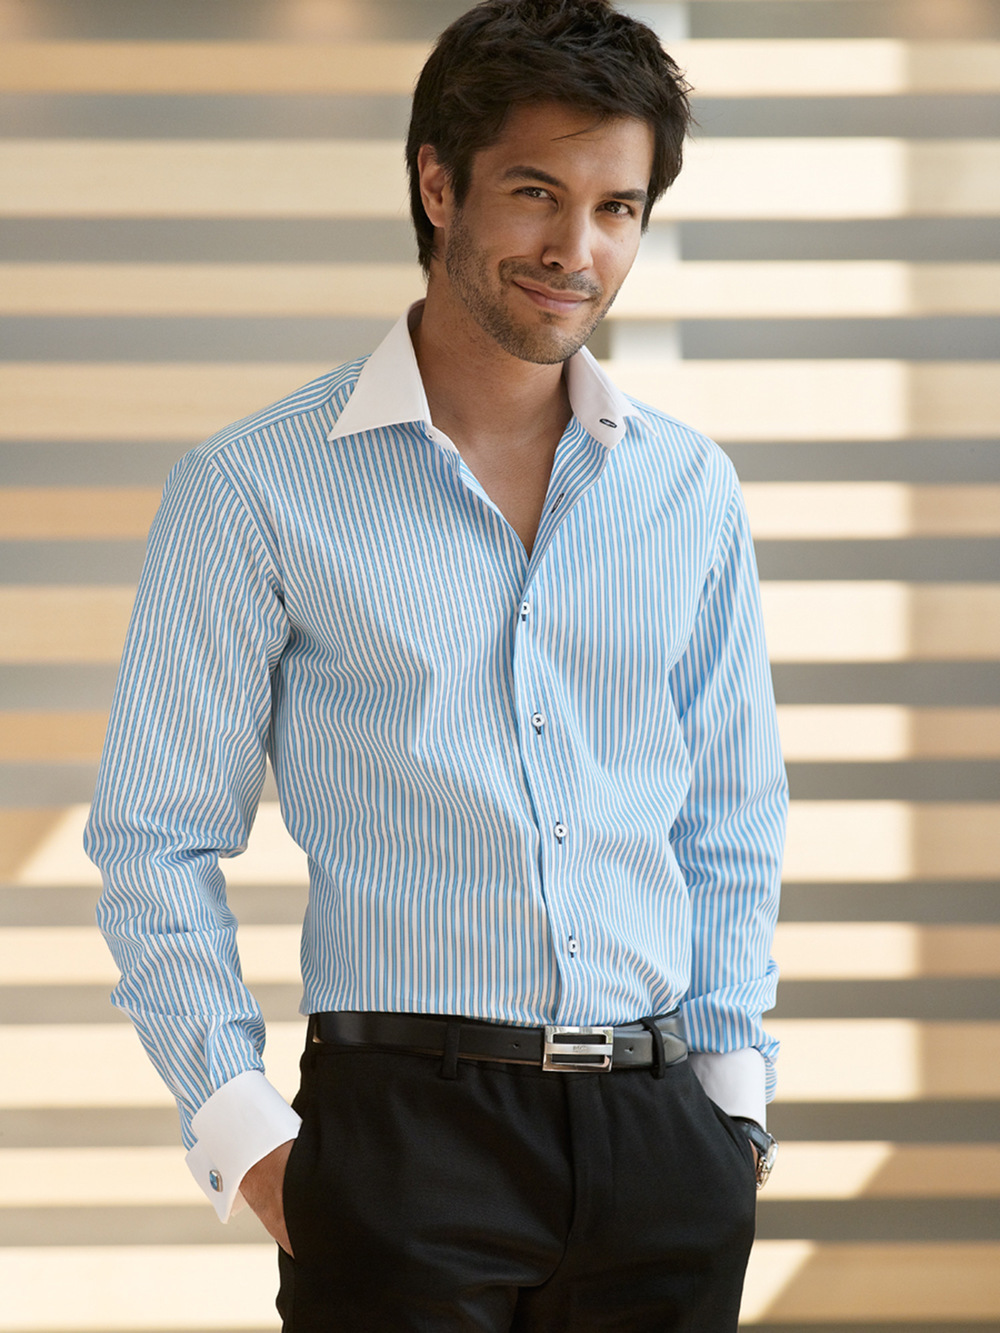 Etrusca-Collezione-Uno-Gentiluomo-Blue-Light-Stripe-White-Collar-Cuff-Model-Indoors-001-RT.jpg